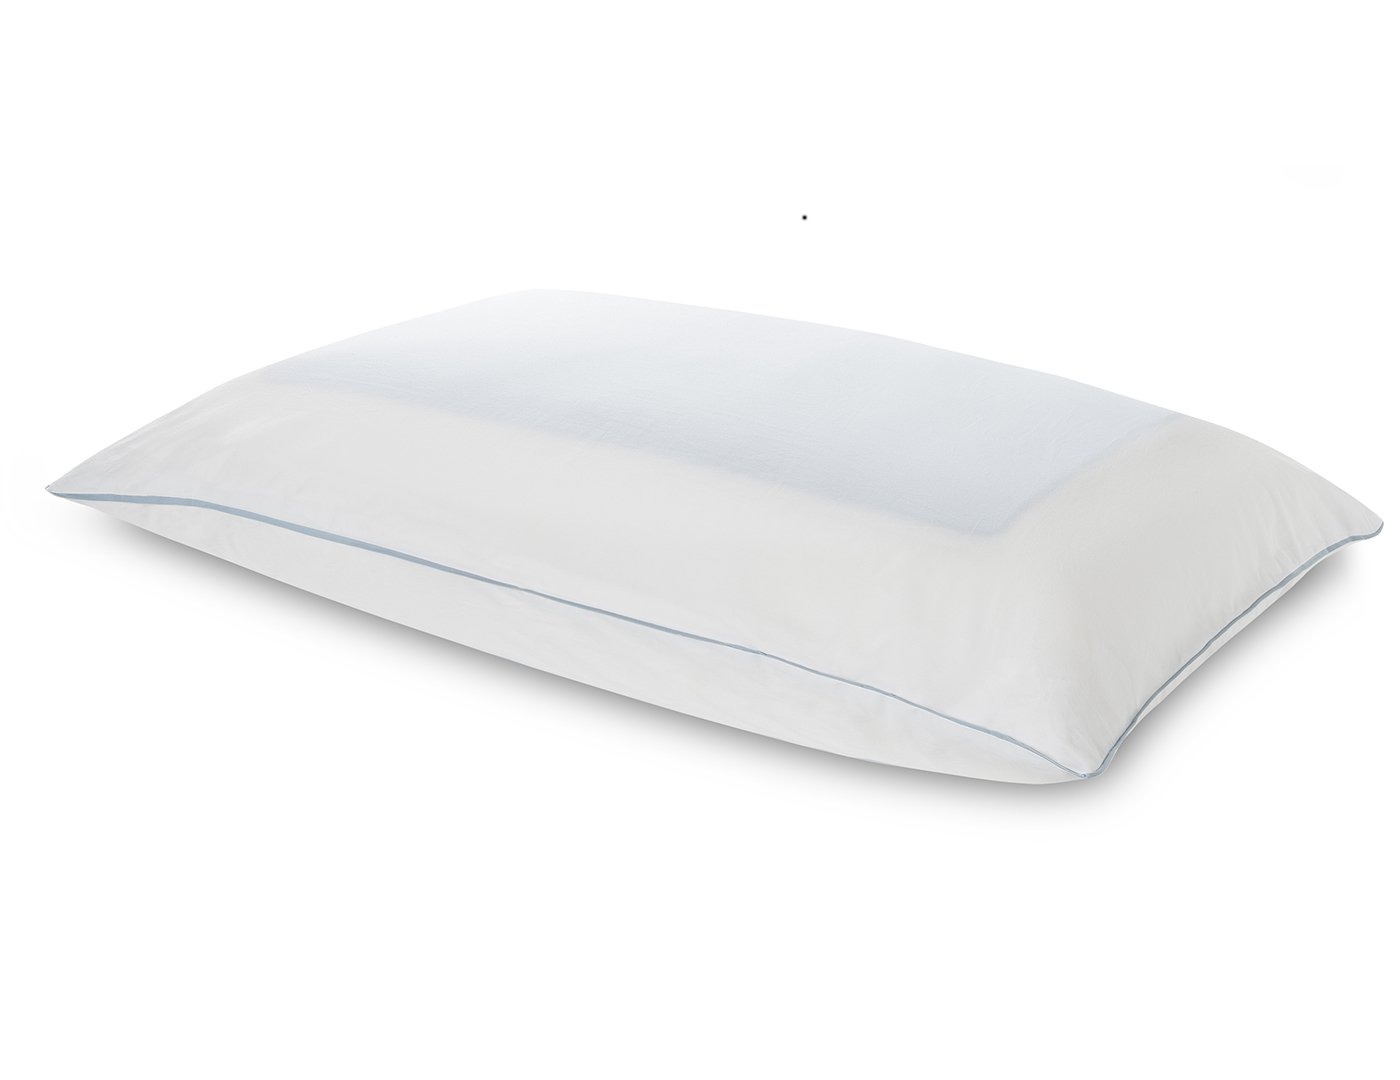 TEMPUR-Cloud Breeze Dual Cooling Queen Pillow